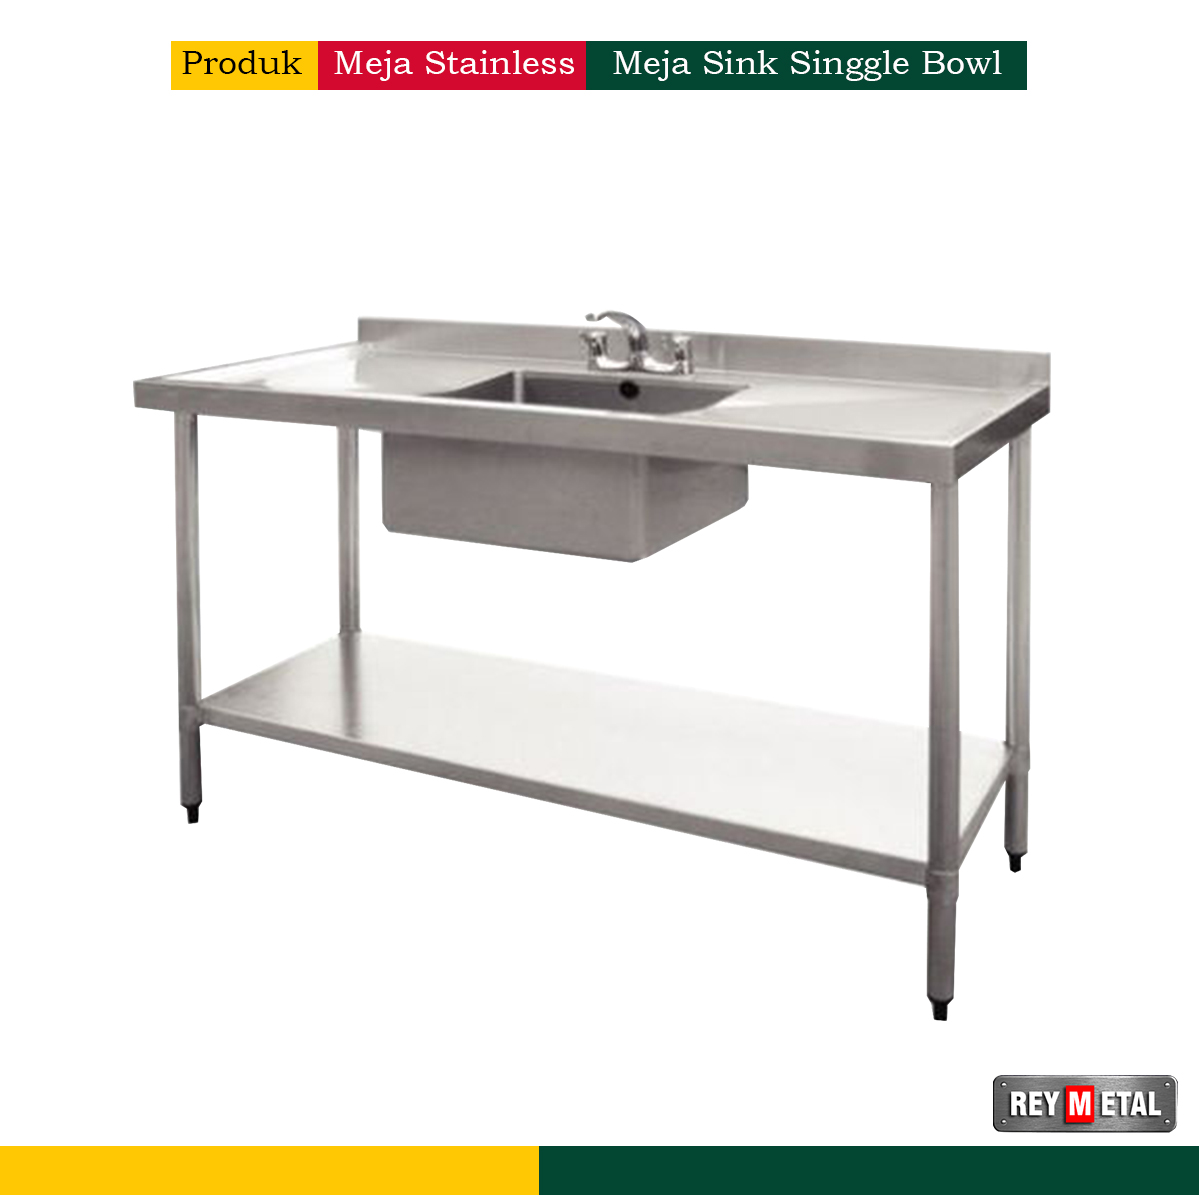 Meja sink stainless steel murah